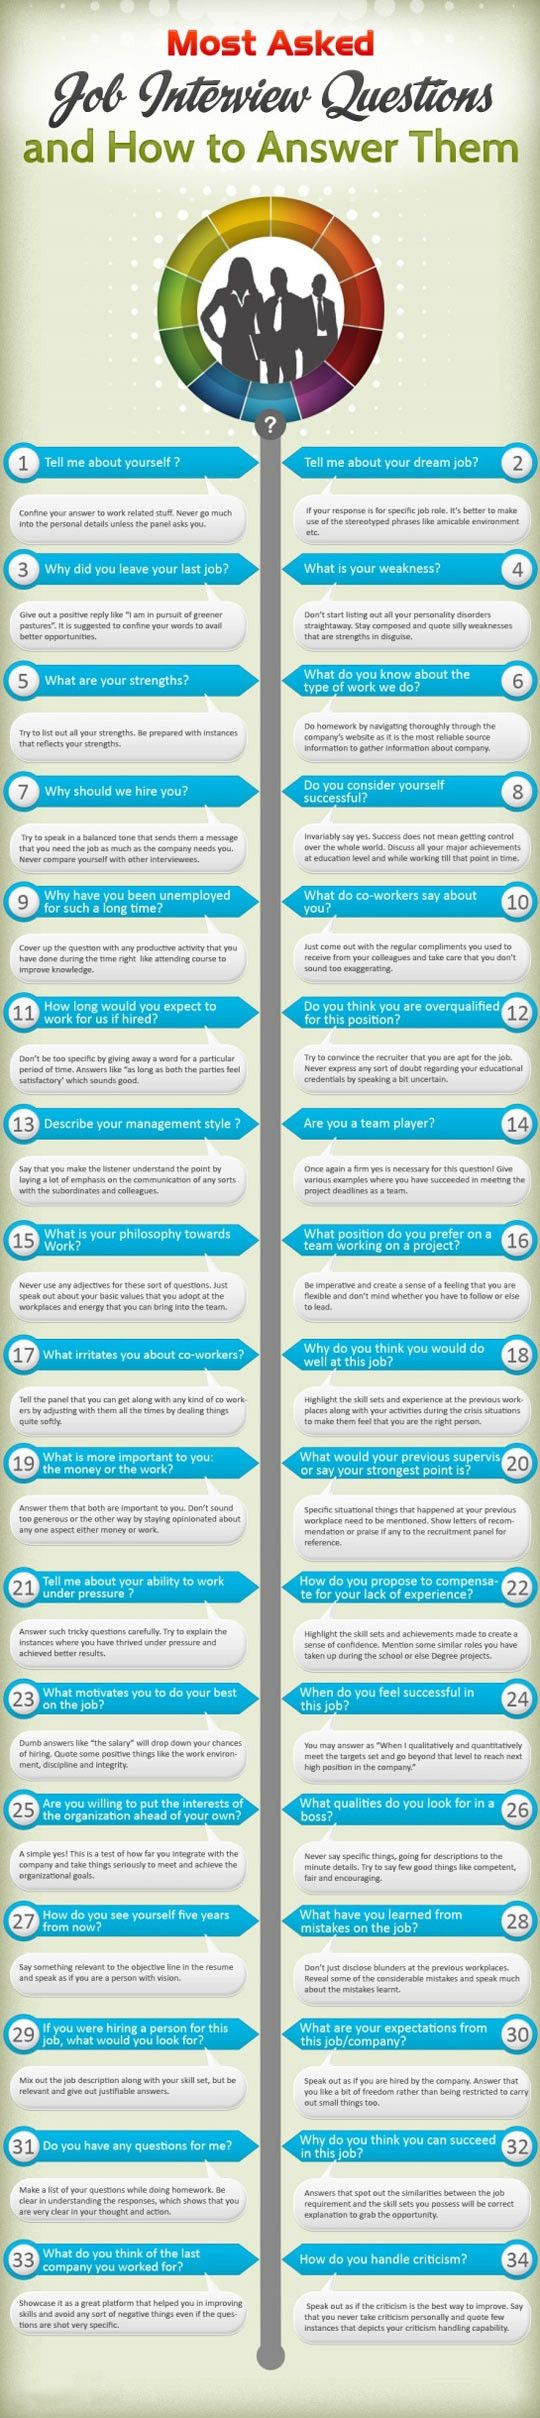 most asked job interview questions and how to answer them infographic is one of the best infographics created in the how to category - The Best Job Interview Tips You Can Get